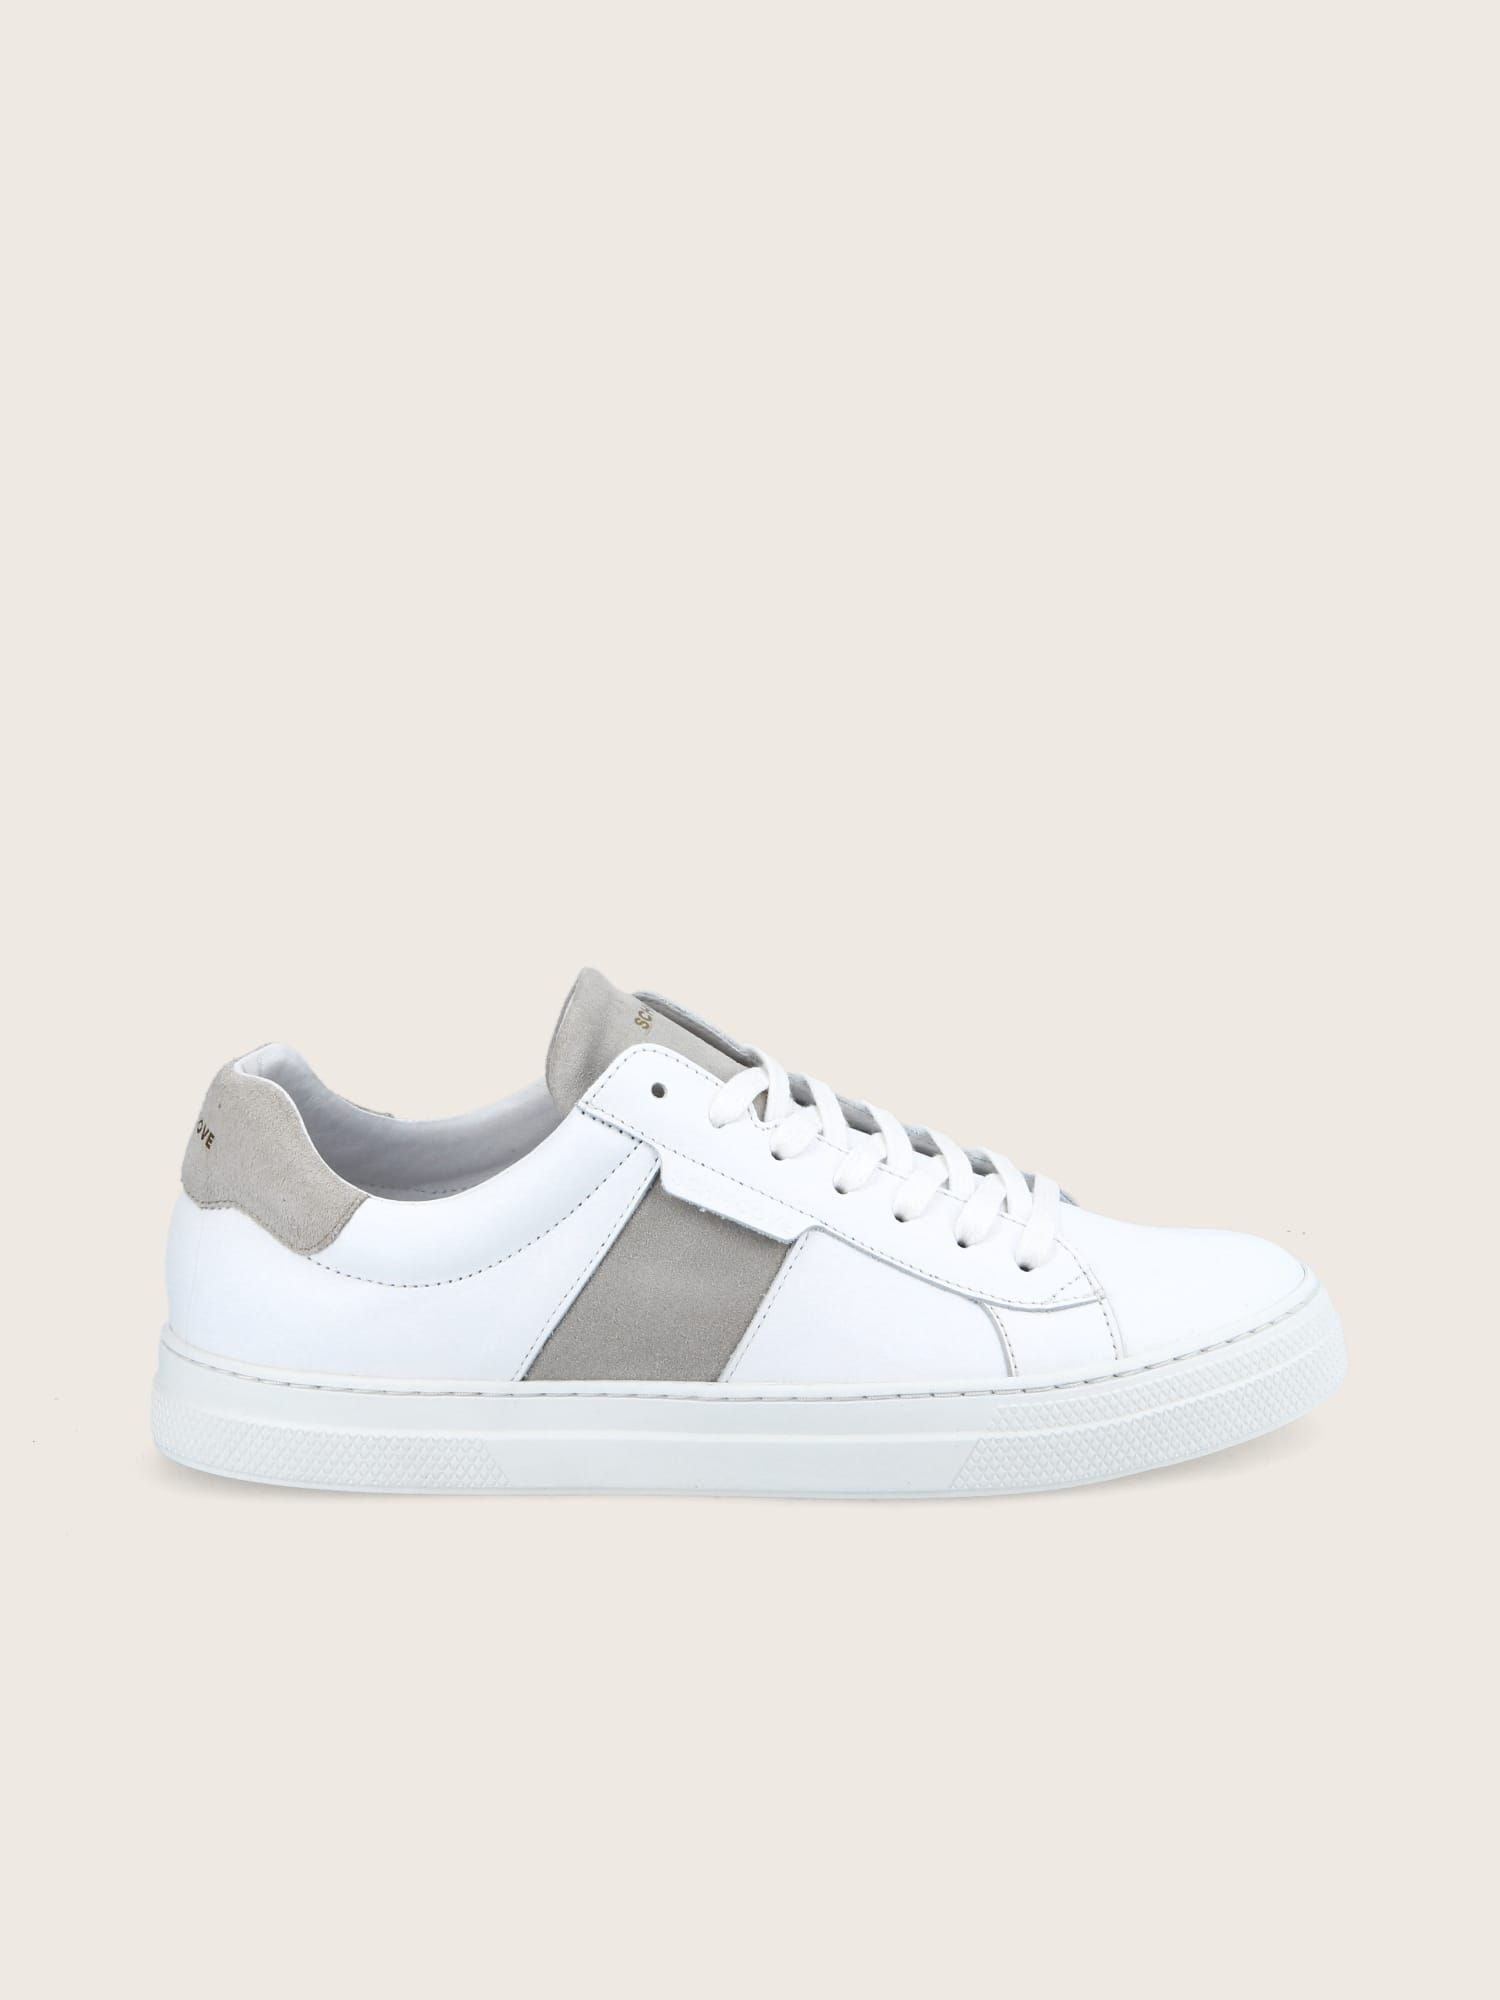 schmoove.fr SPARK GANG - NAPPA/SUEDE - WHITE/GREGE